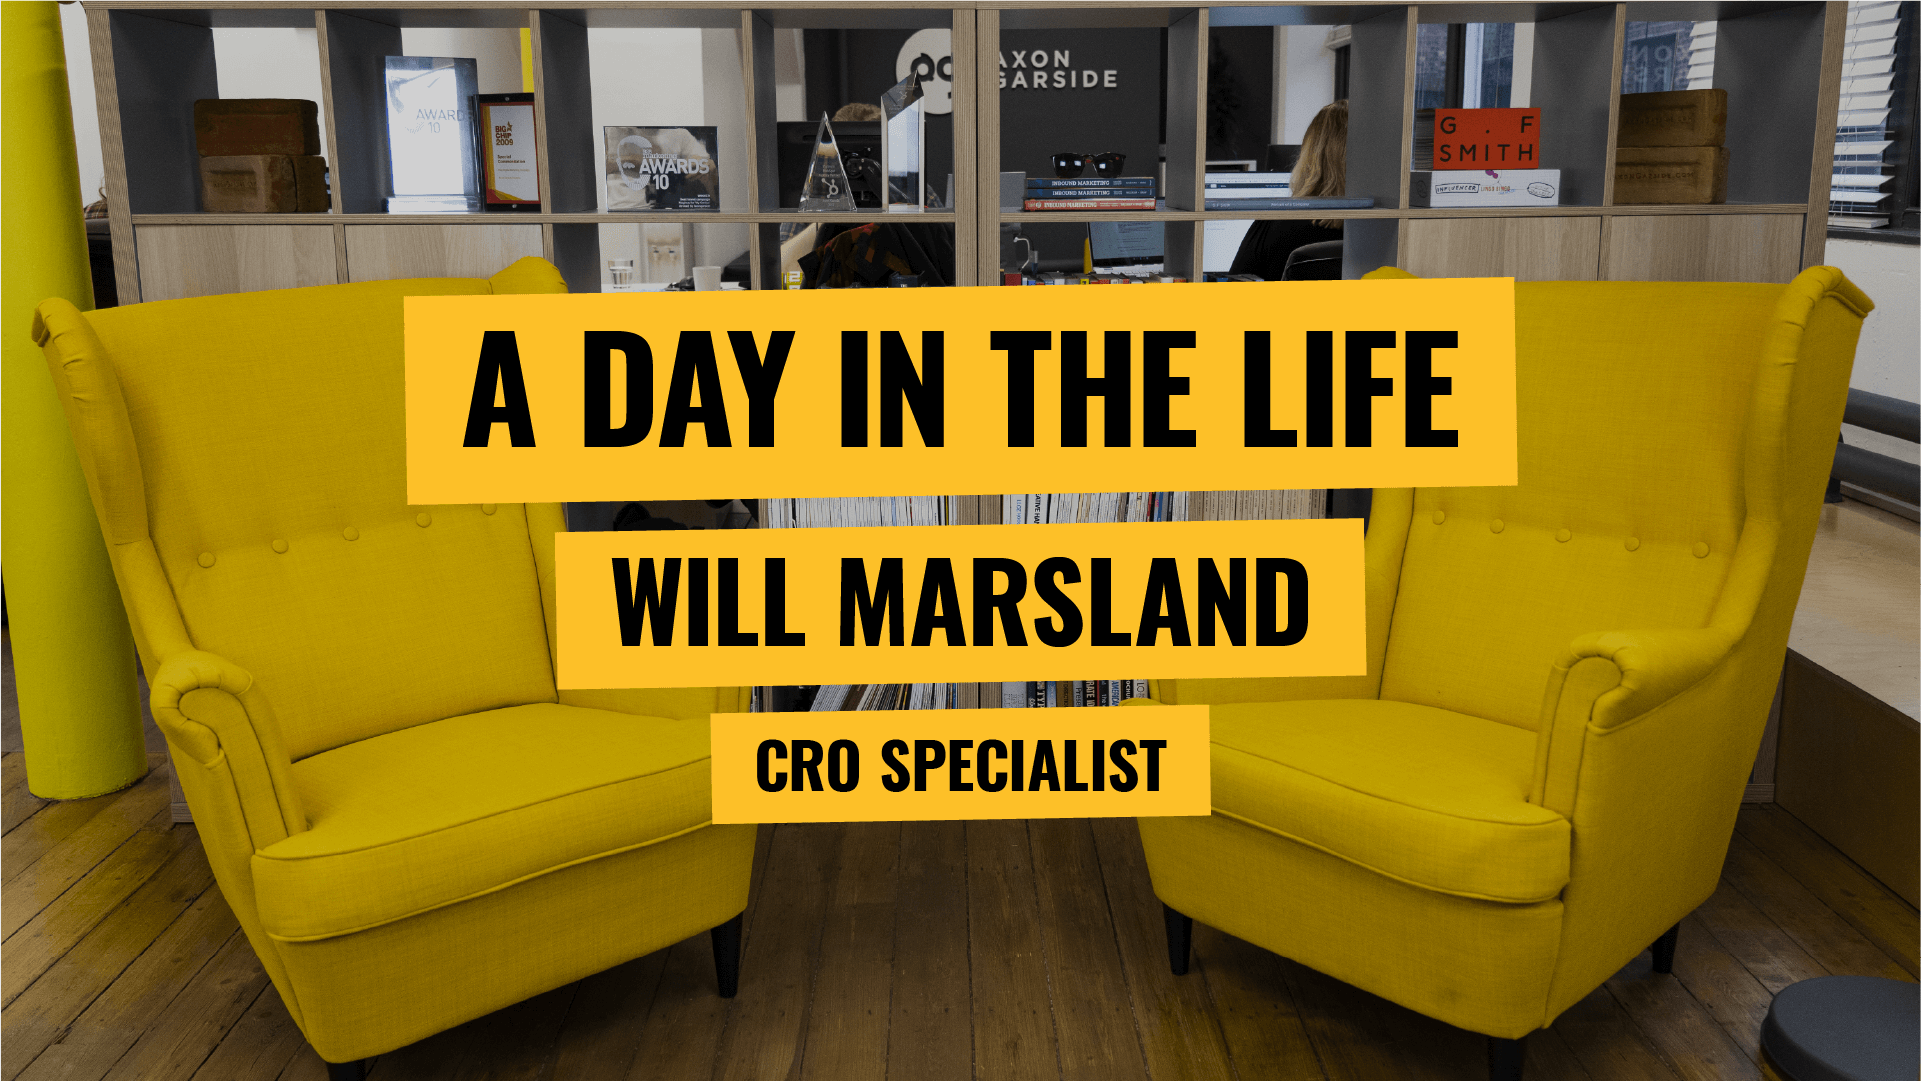 A day in the life - Will Marsland - CRO Specialist